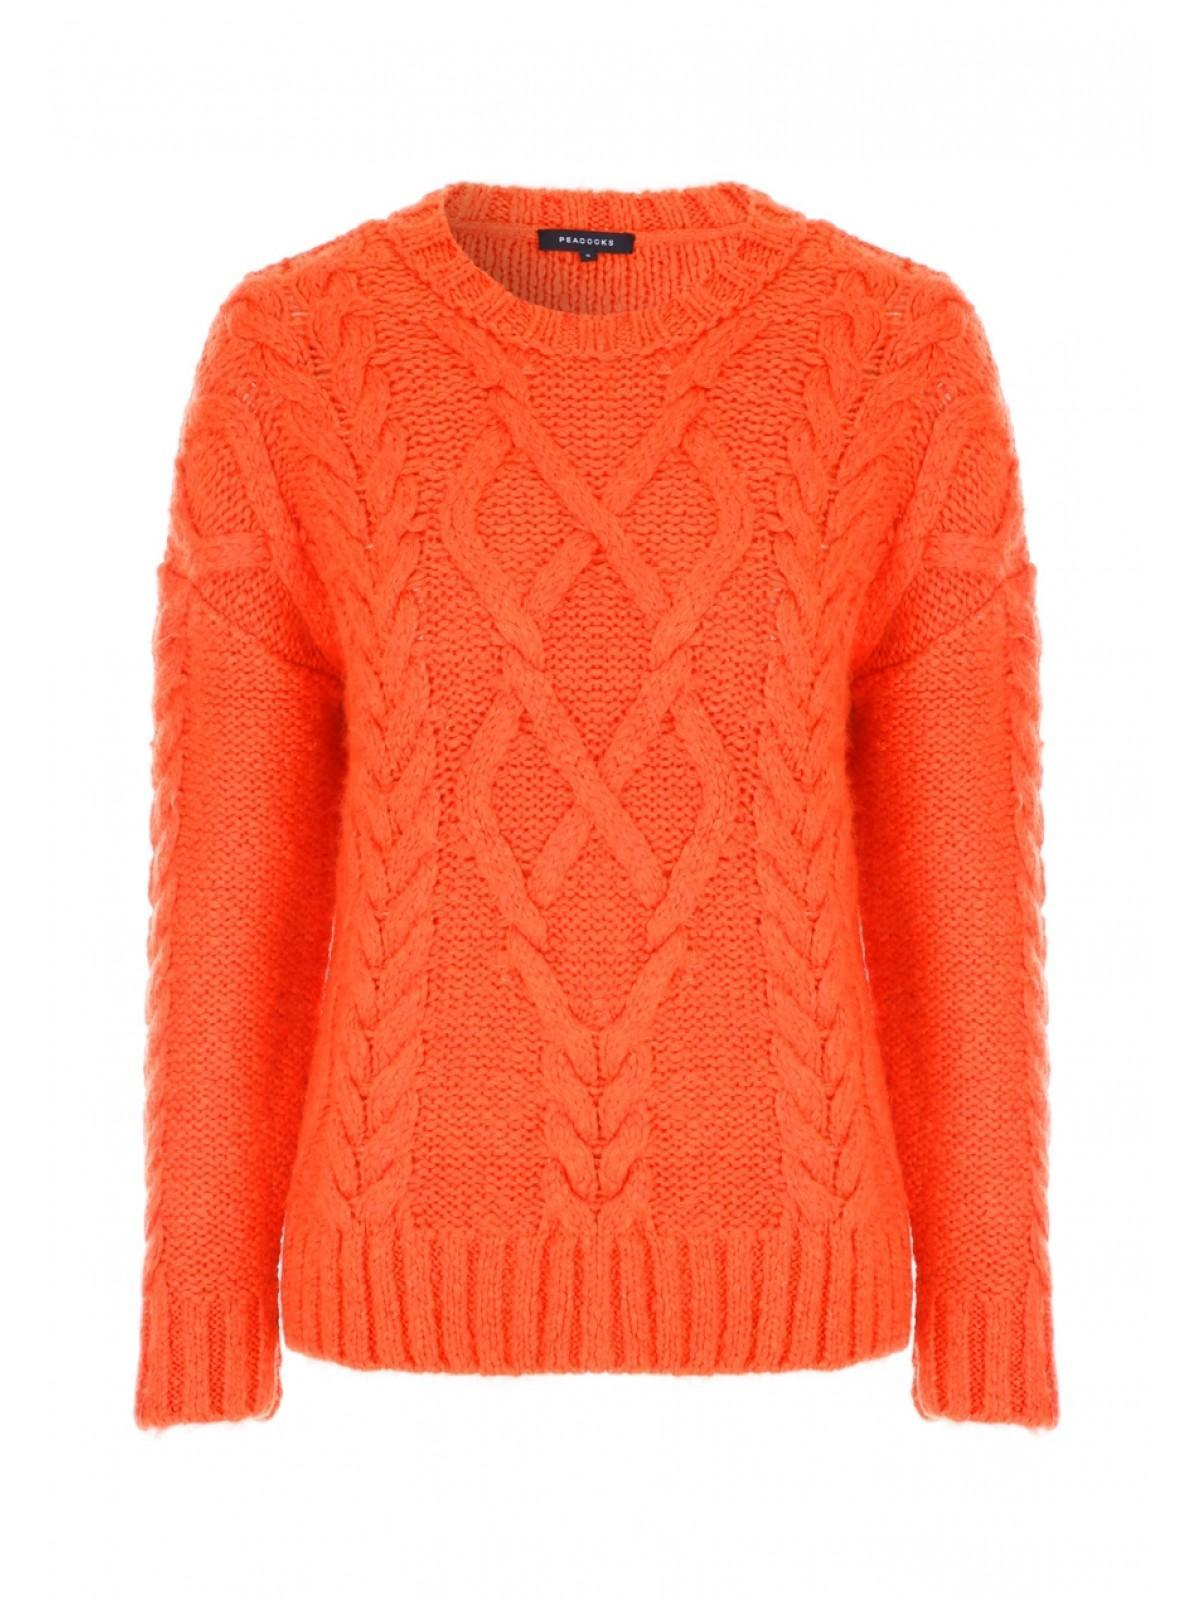 302239adcbd Womens Orange Cable Knit Jumper